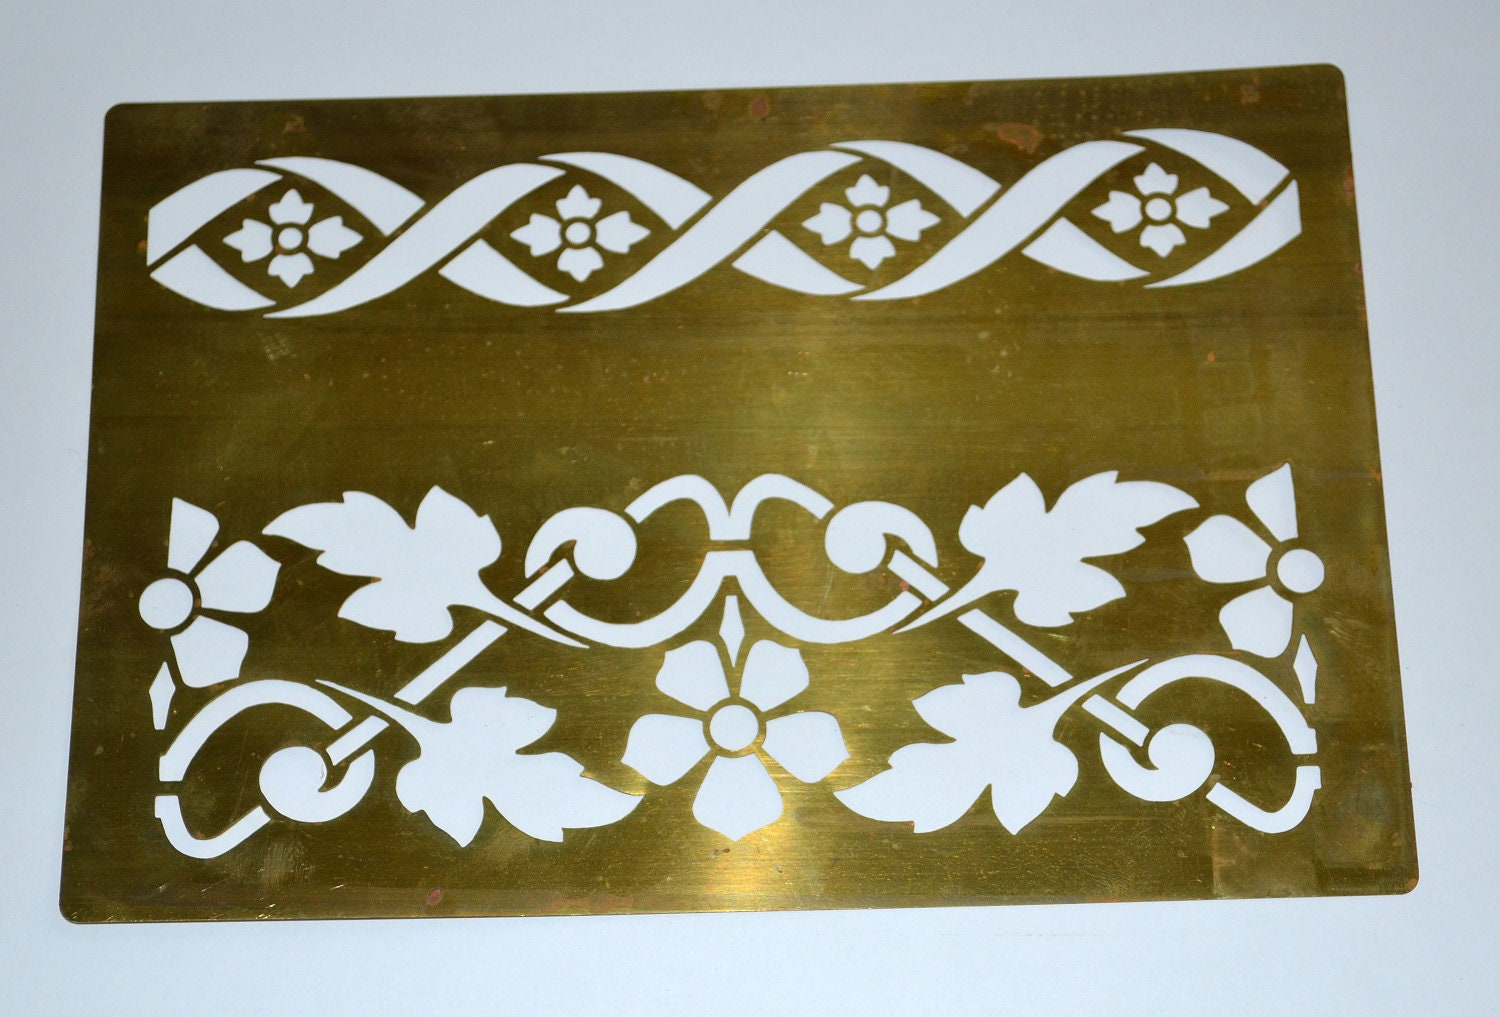 Vintage brass stencil painting - Border stencils for painting ...